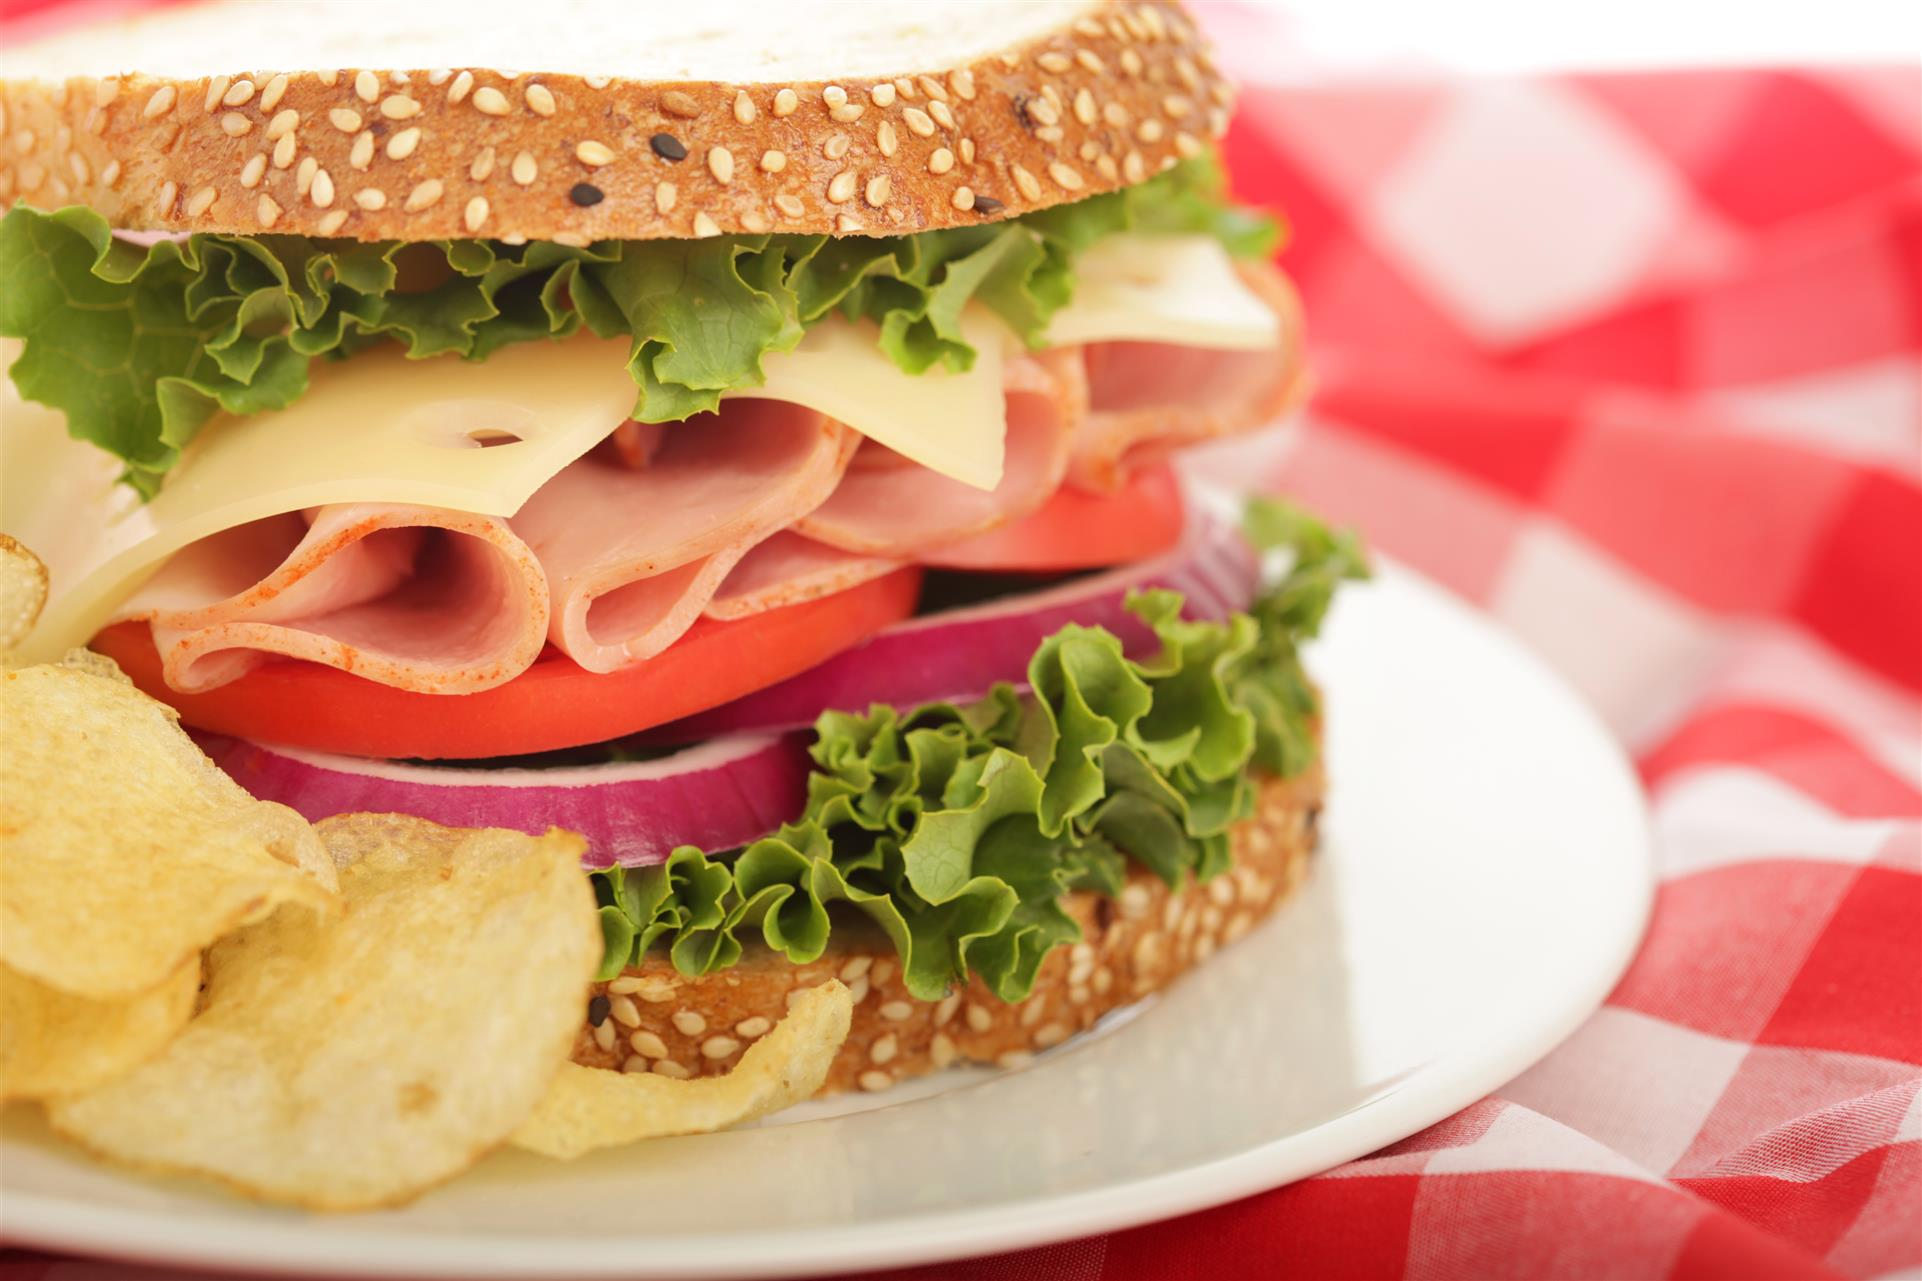 turkey sandwich with lettuce, tomato, cheese